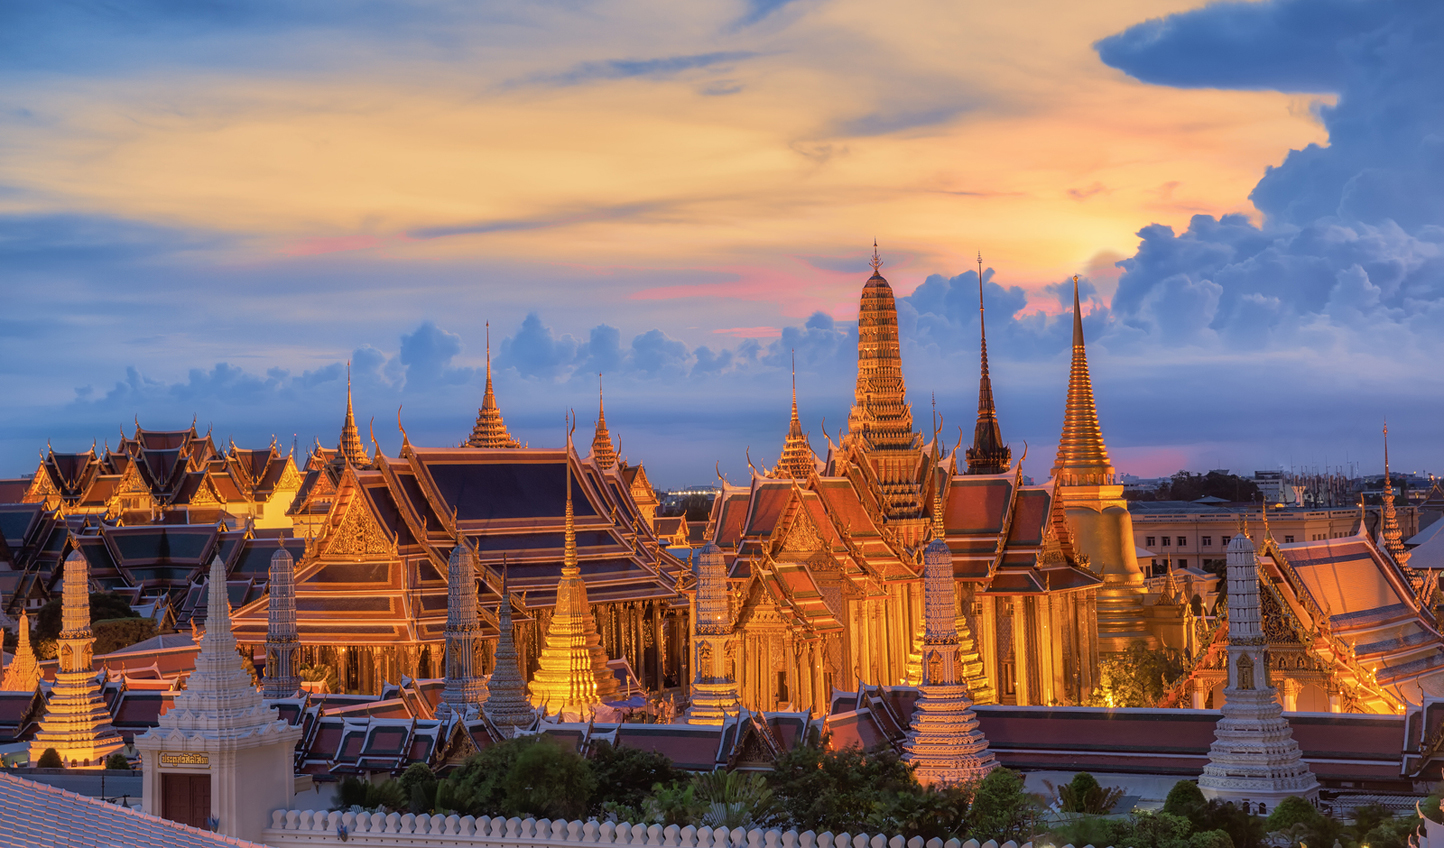 Marvel at the wonder of the Grand Palace at sunset